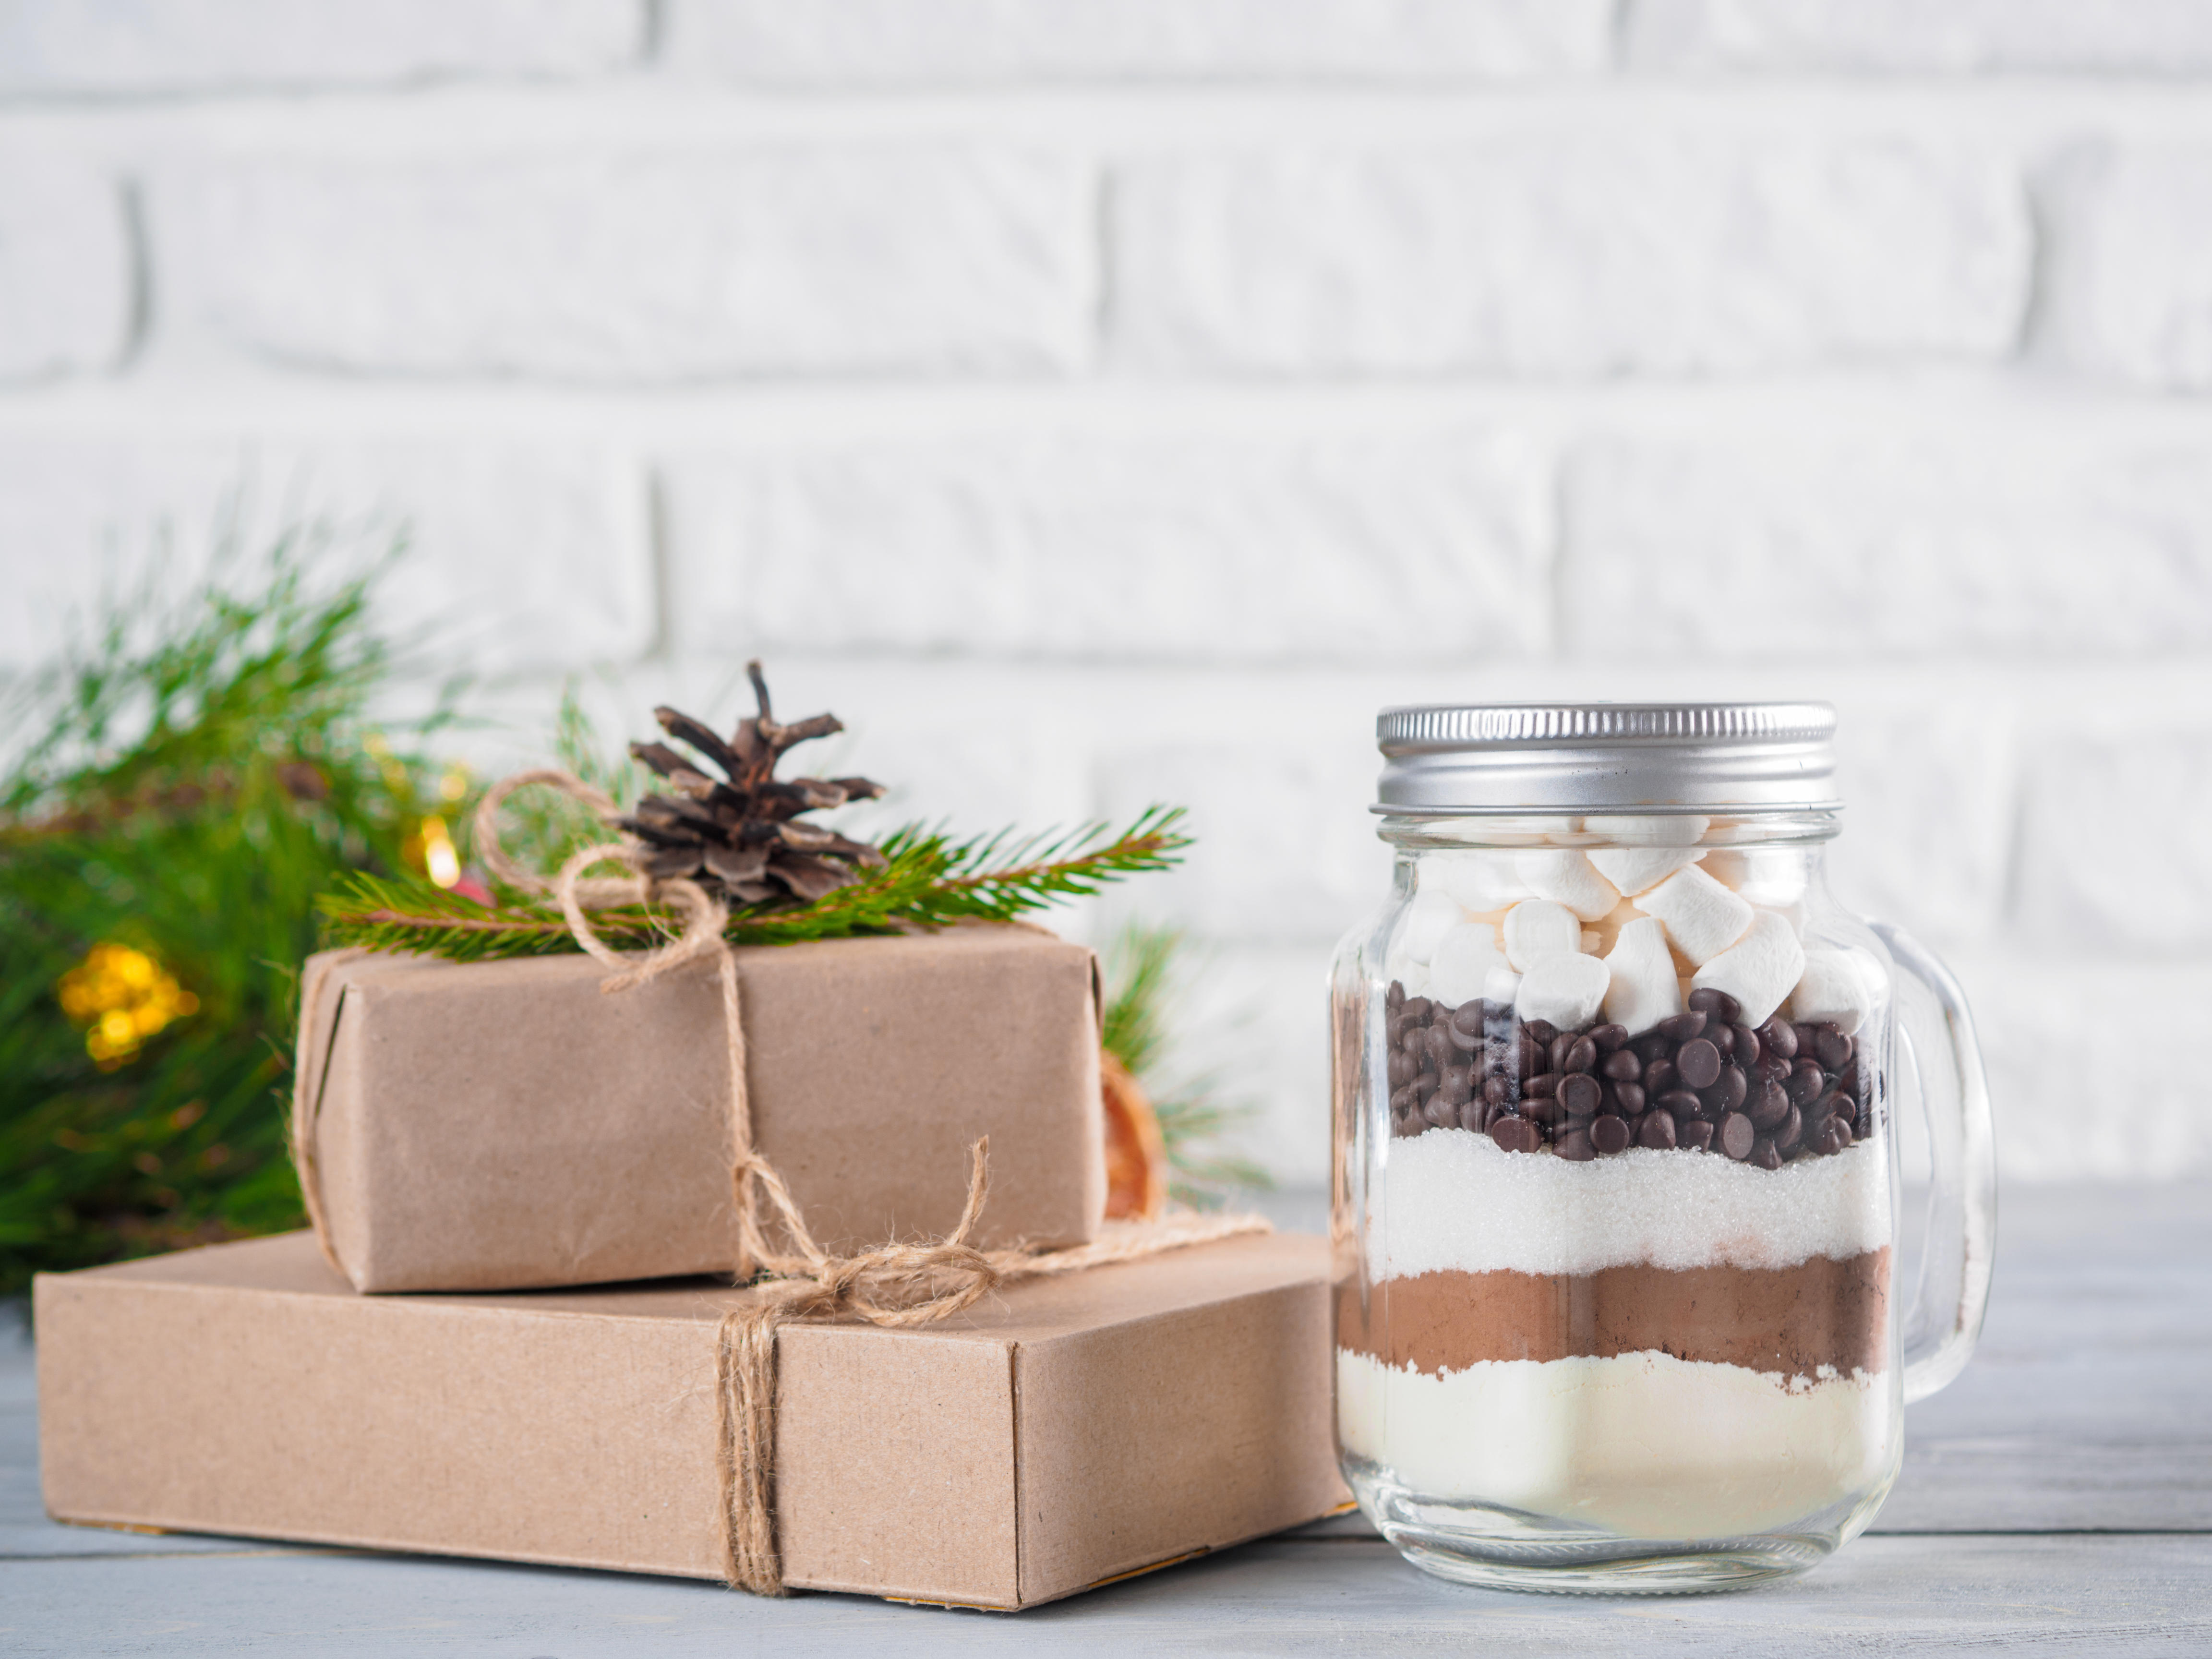 8 Tips for Sustainable Holiday Gift Giving